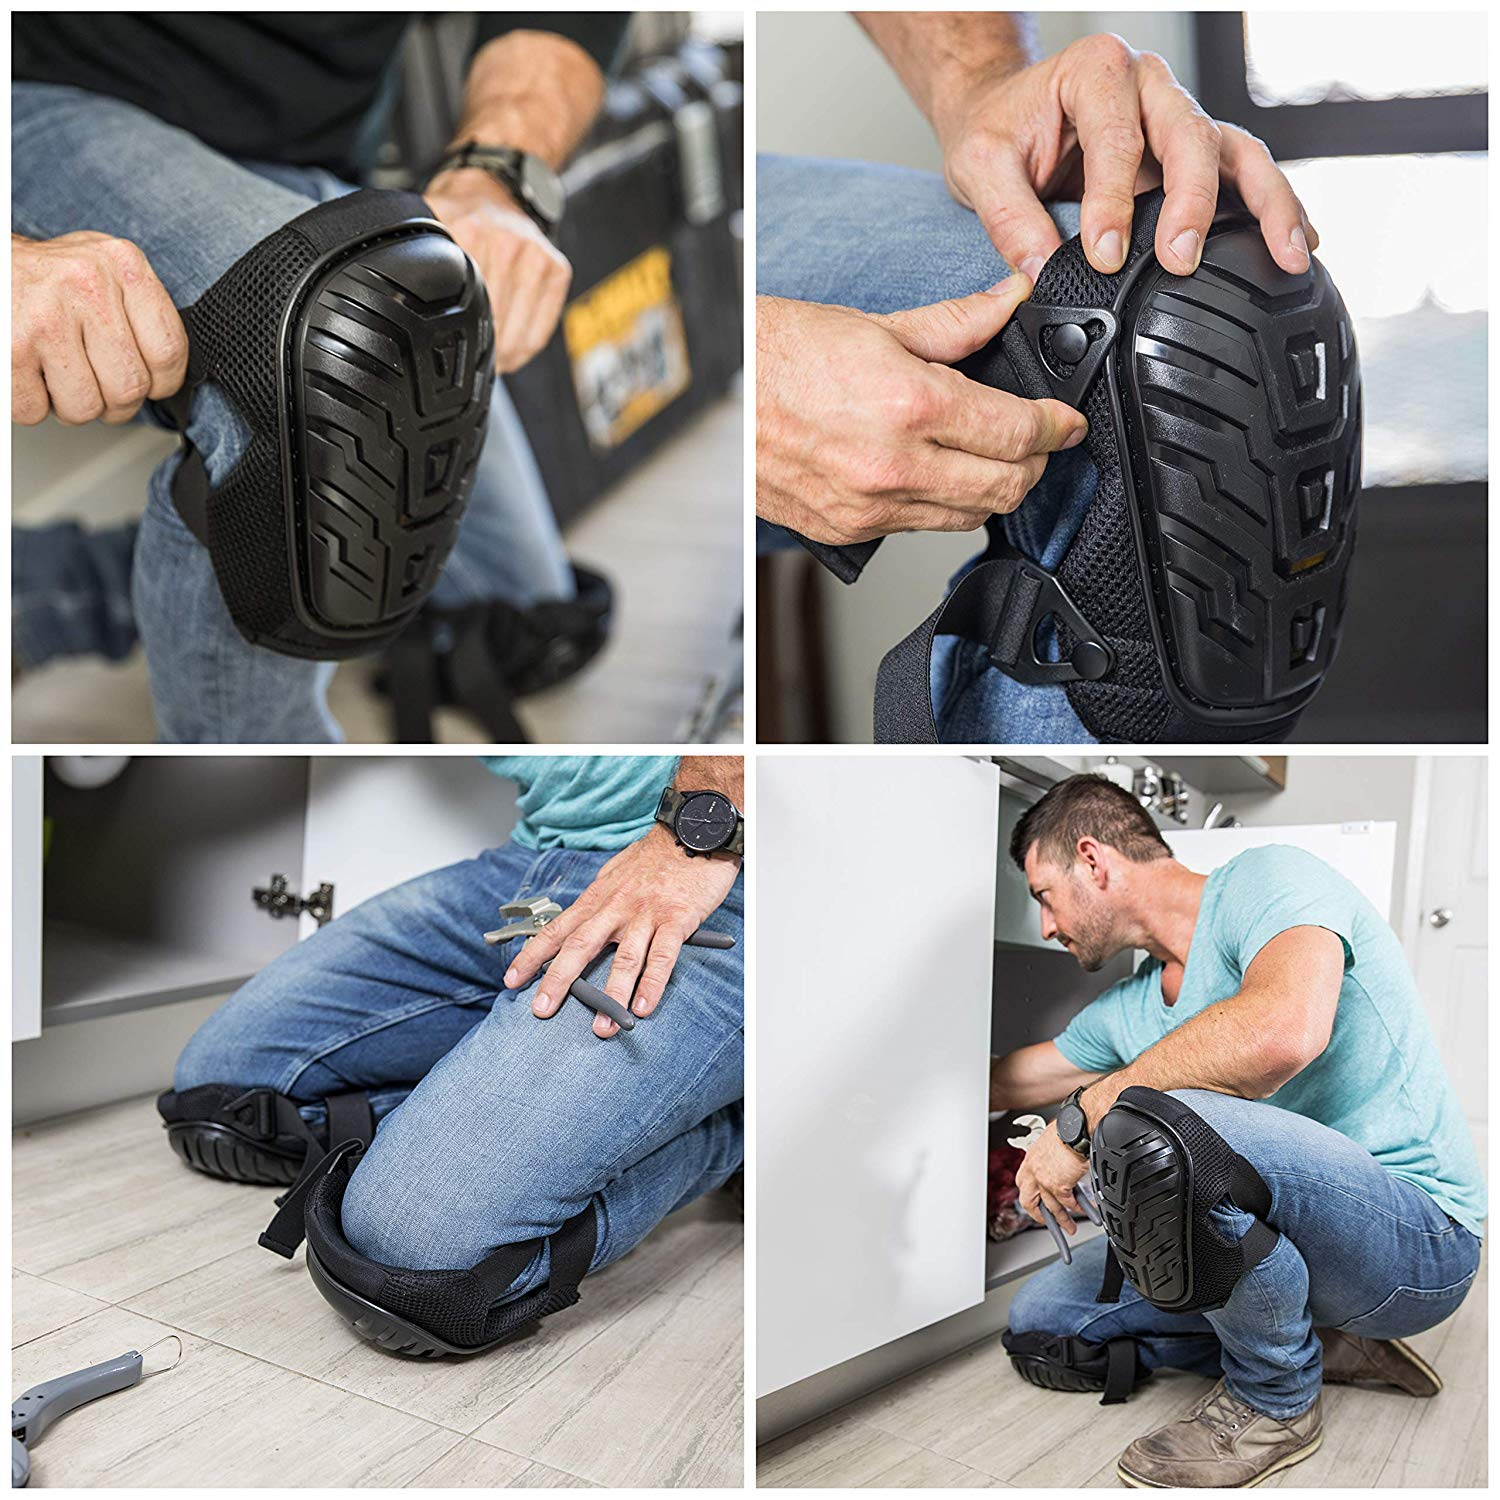 Rough Work Gear Professional Knee Pads - Built Tough To Last - Will Stay In Place All Day Long by Rough Work Gear (Image #6)